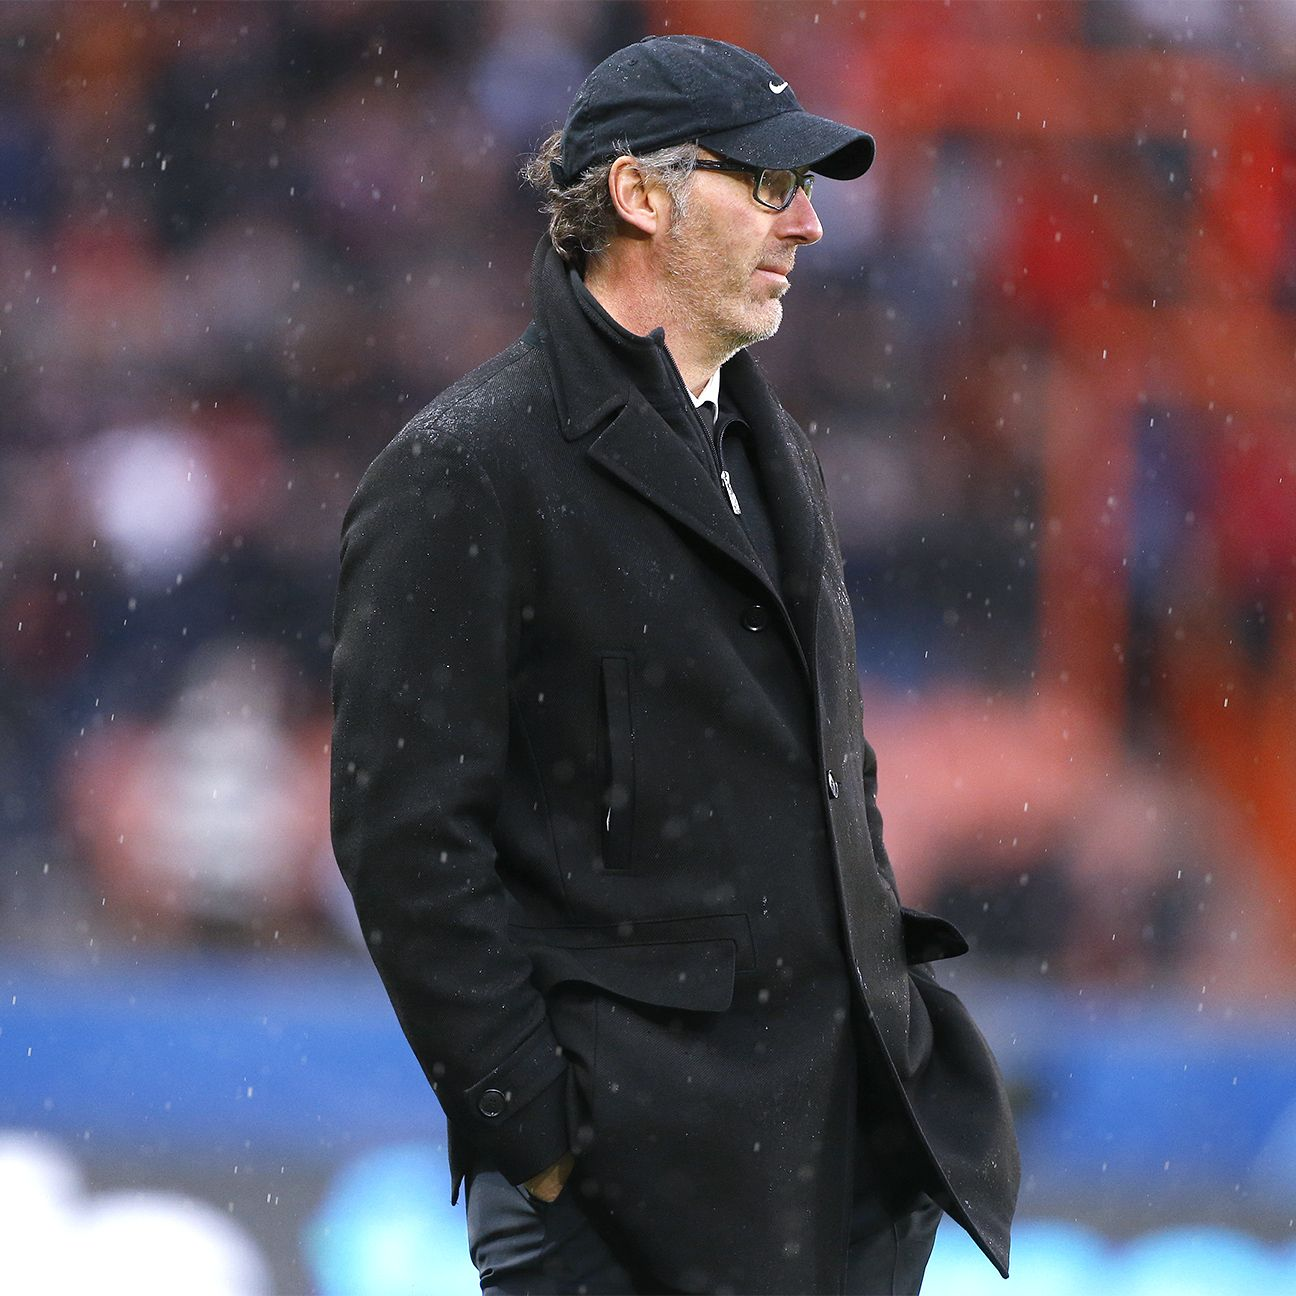 A third straight Ligue 1 title is in reach for PSG, but it has been far from easy for manager Laurent Blanc.